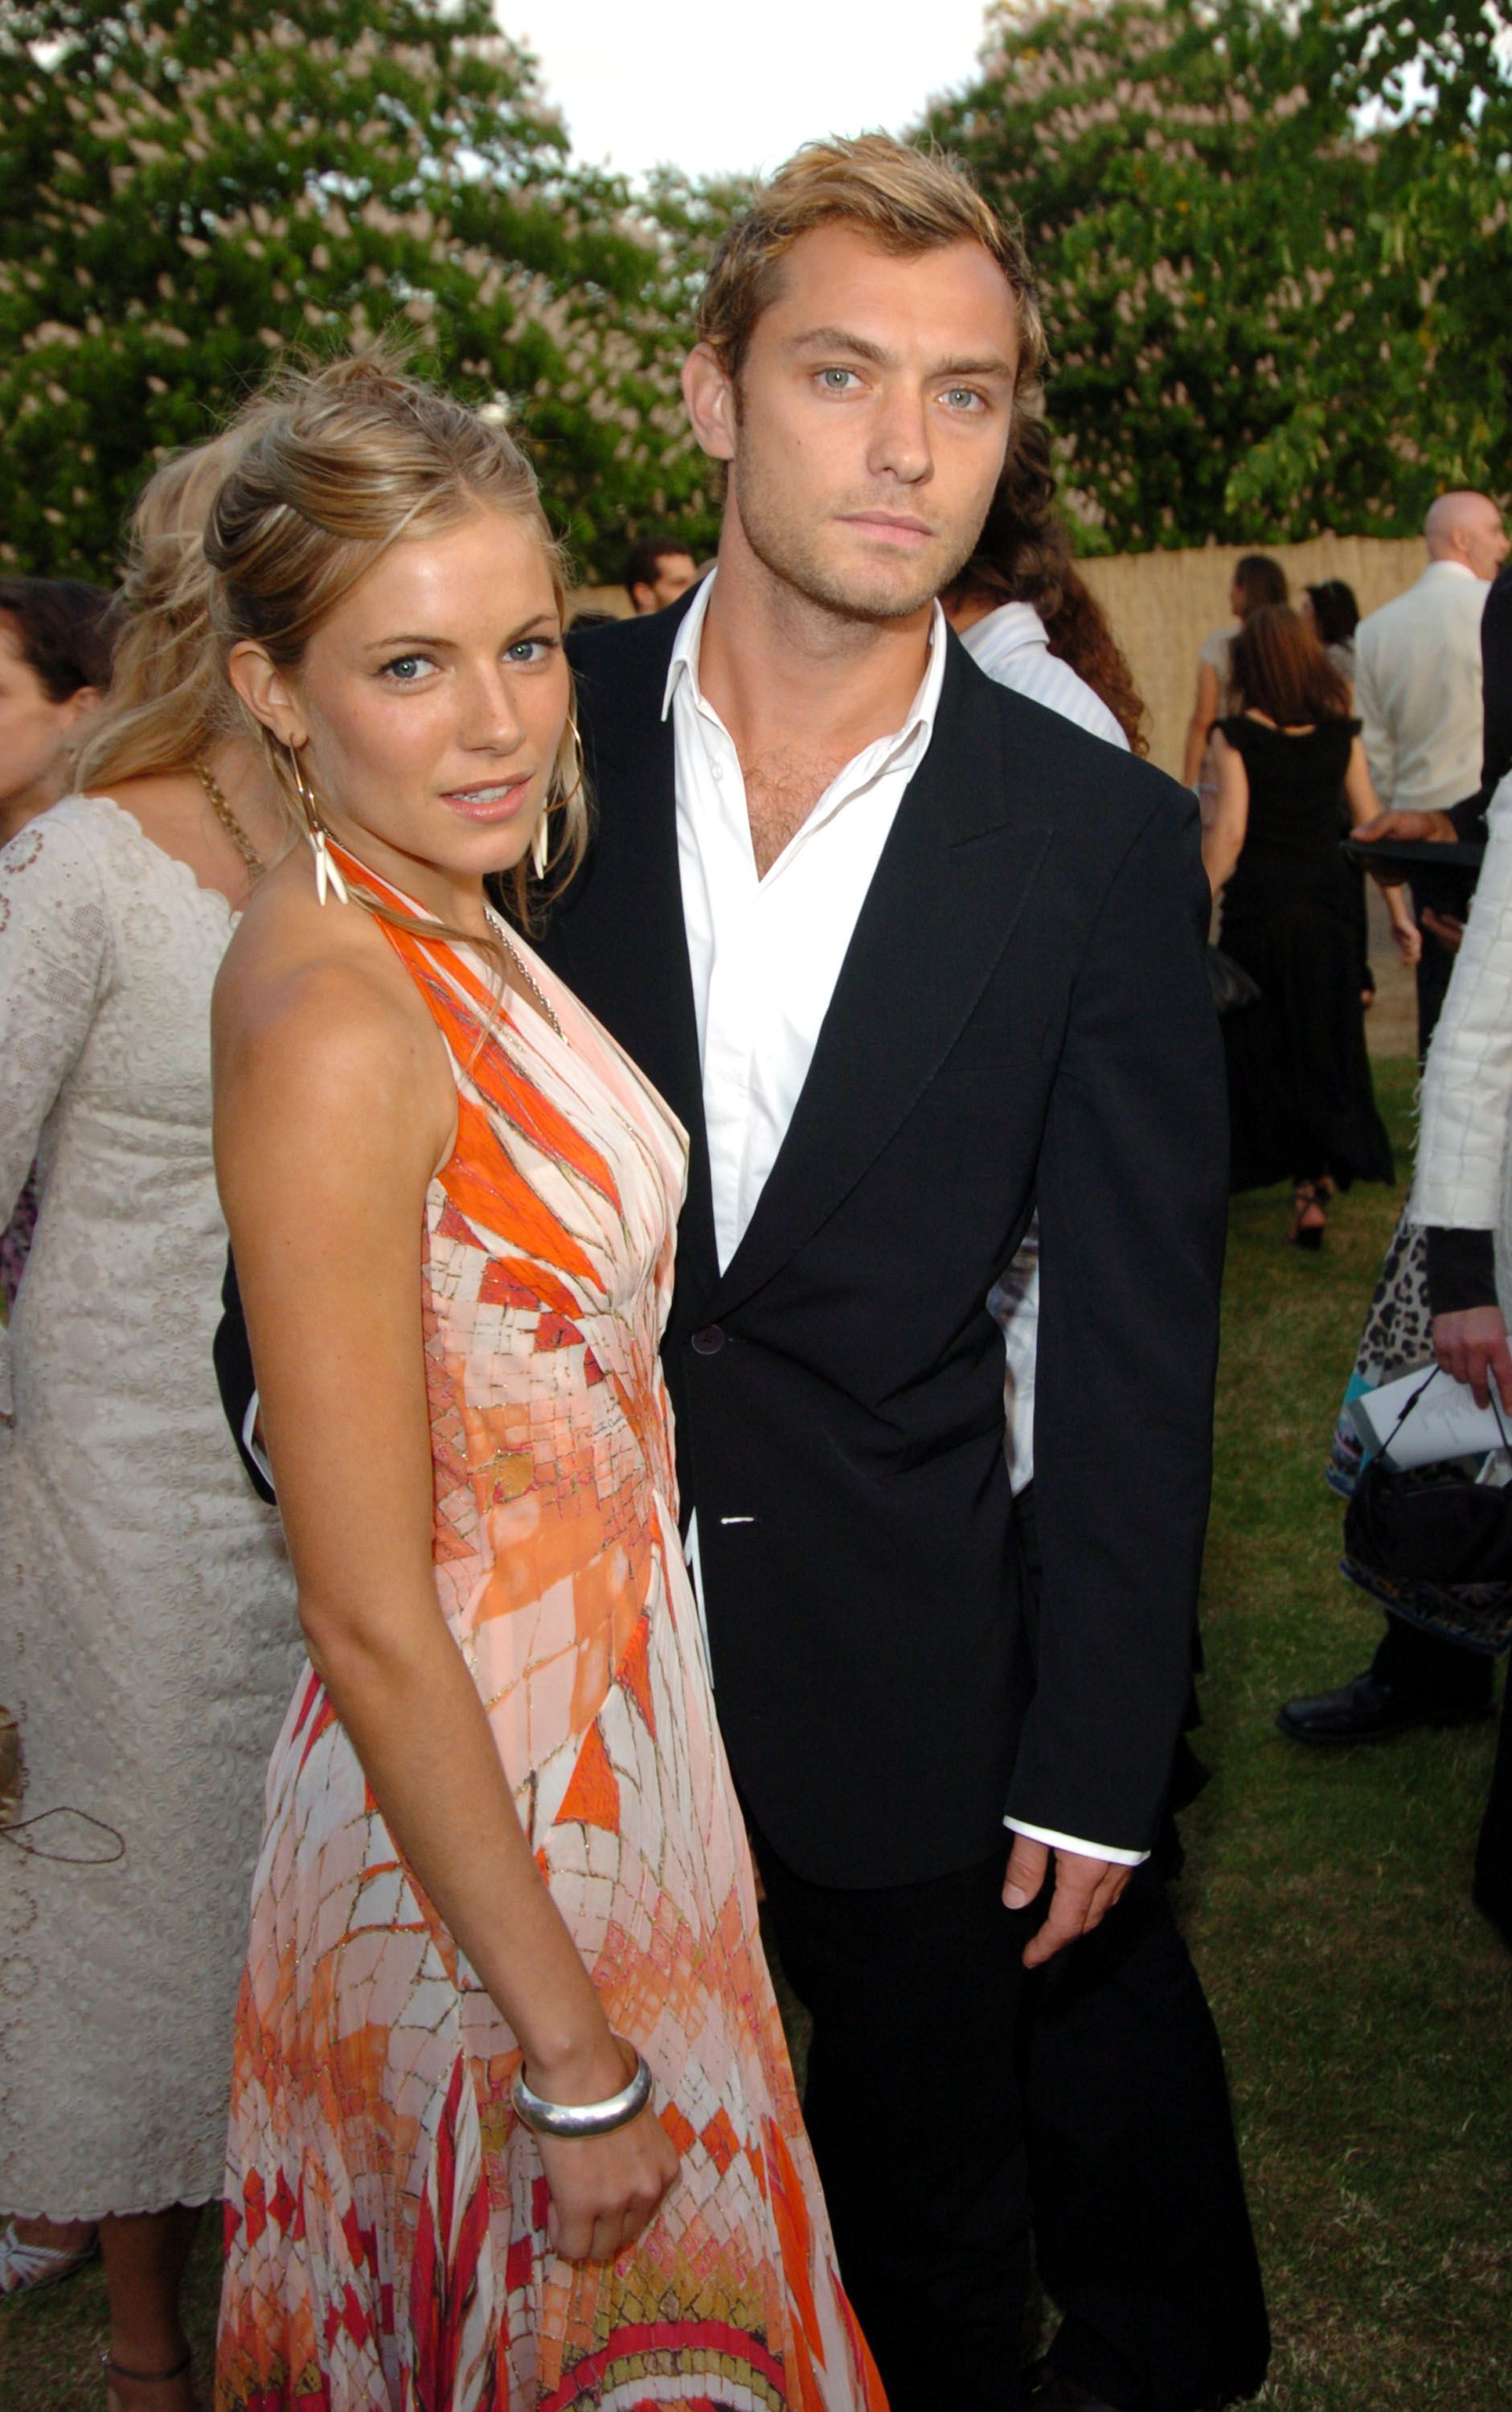 serpentine Gallery Summer Party - June 16, 2004 Sienna Miller and Jude Law (Photo by Jon Furniss/WireImage)